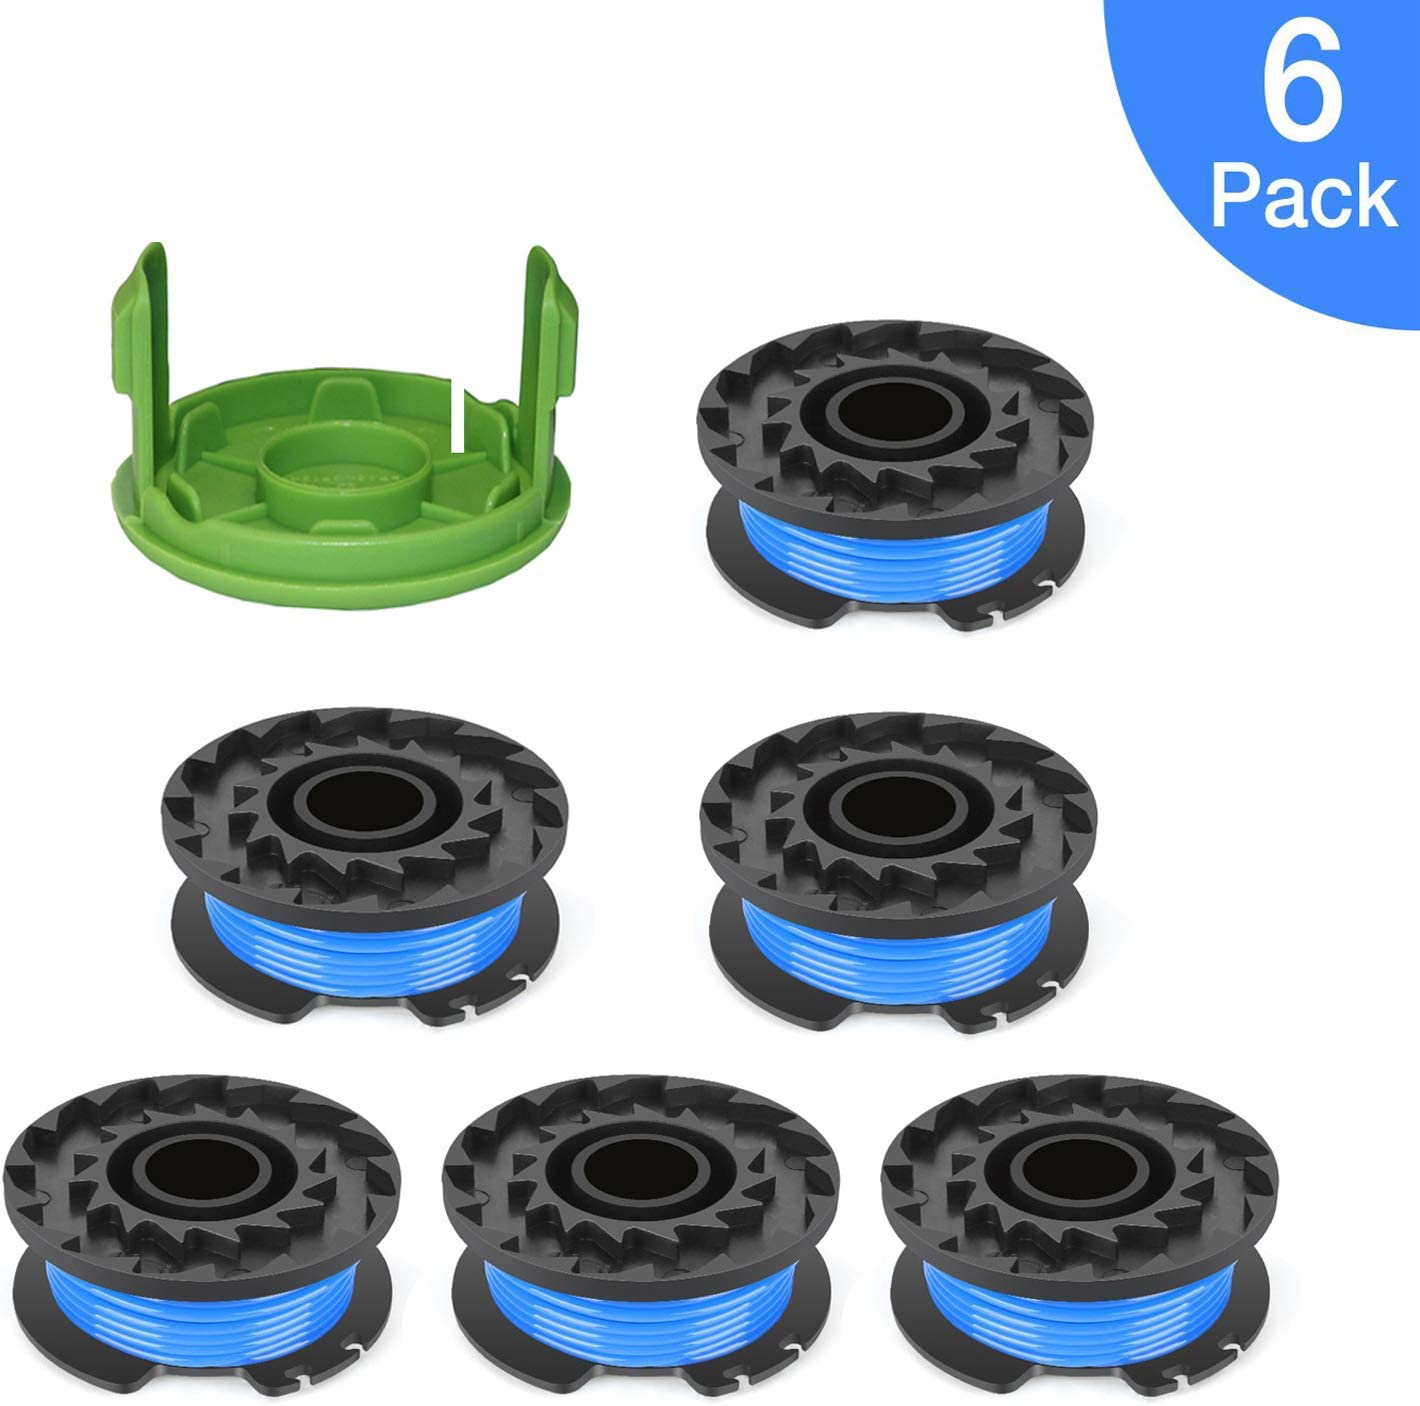 """Eyoloty 0.065"""" Single Line Auto-Feed Replacement Trimmer Spool 29092 for Greenworks Weed Eater String 24V and 40V Trimmer (6 Packs Plus 1 Cap)"""